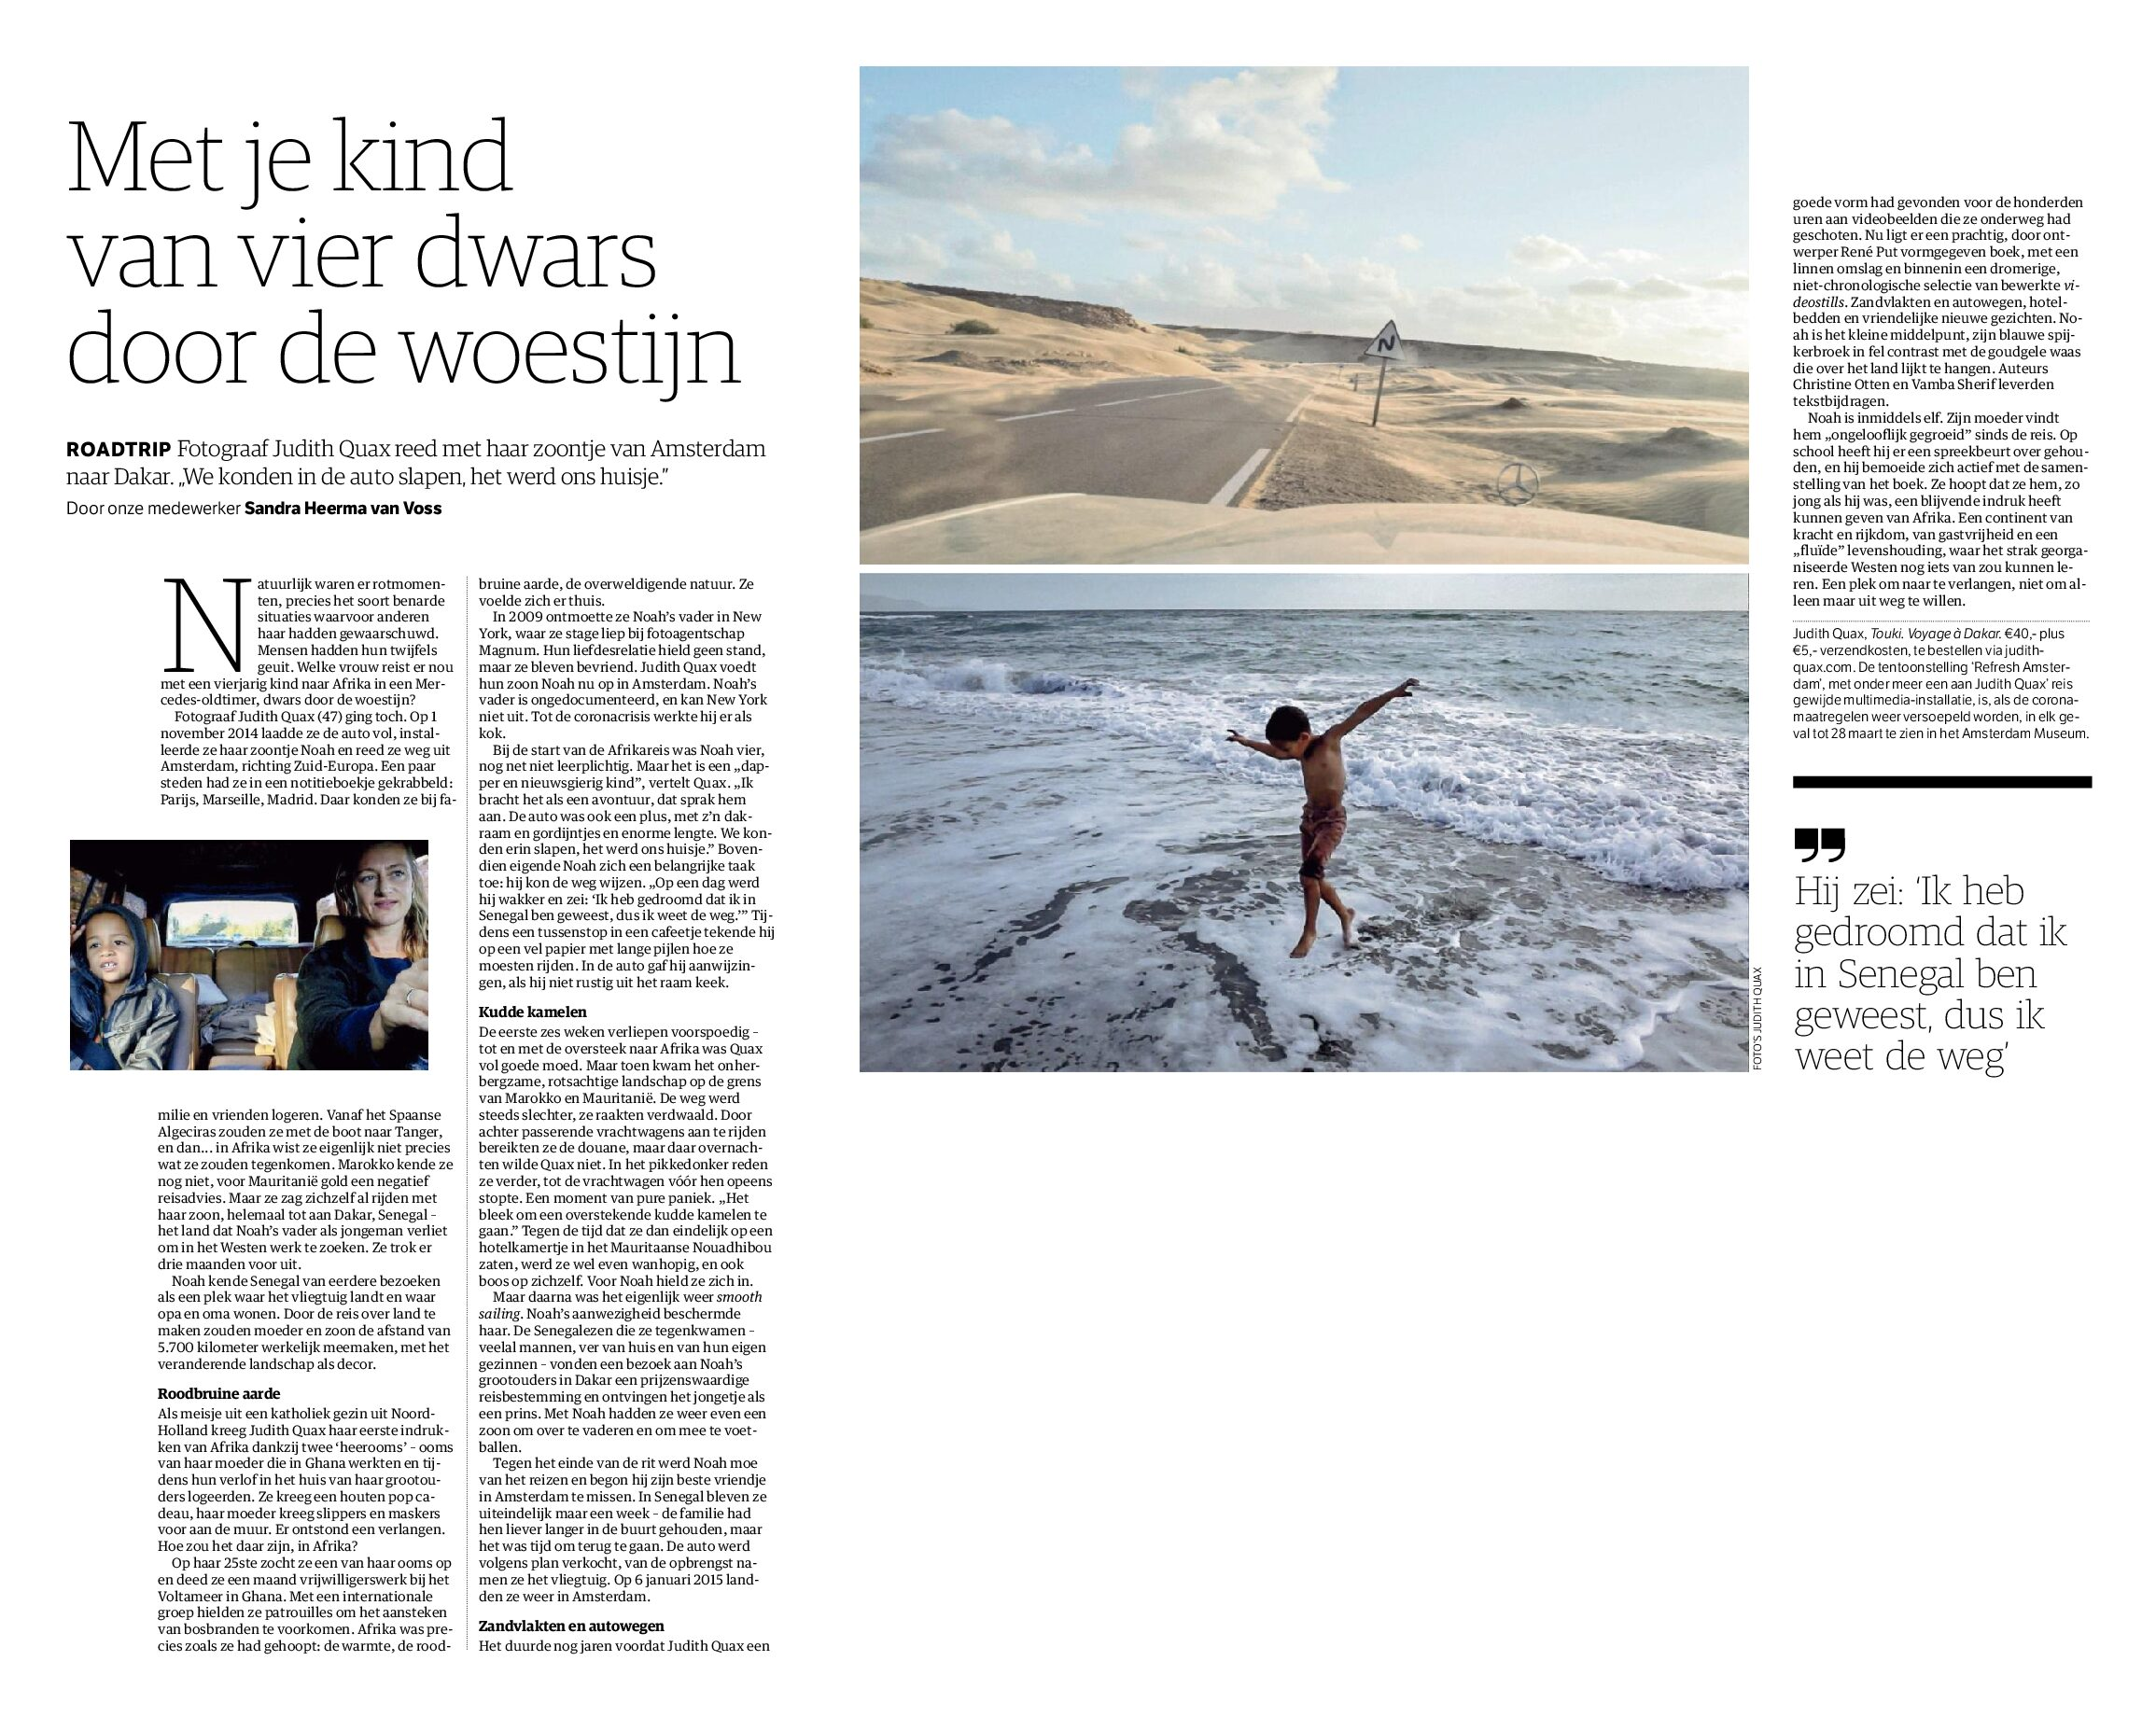 Interview in NRC newspaper